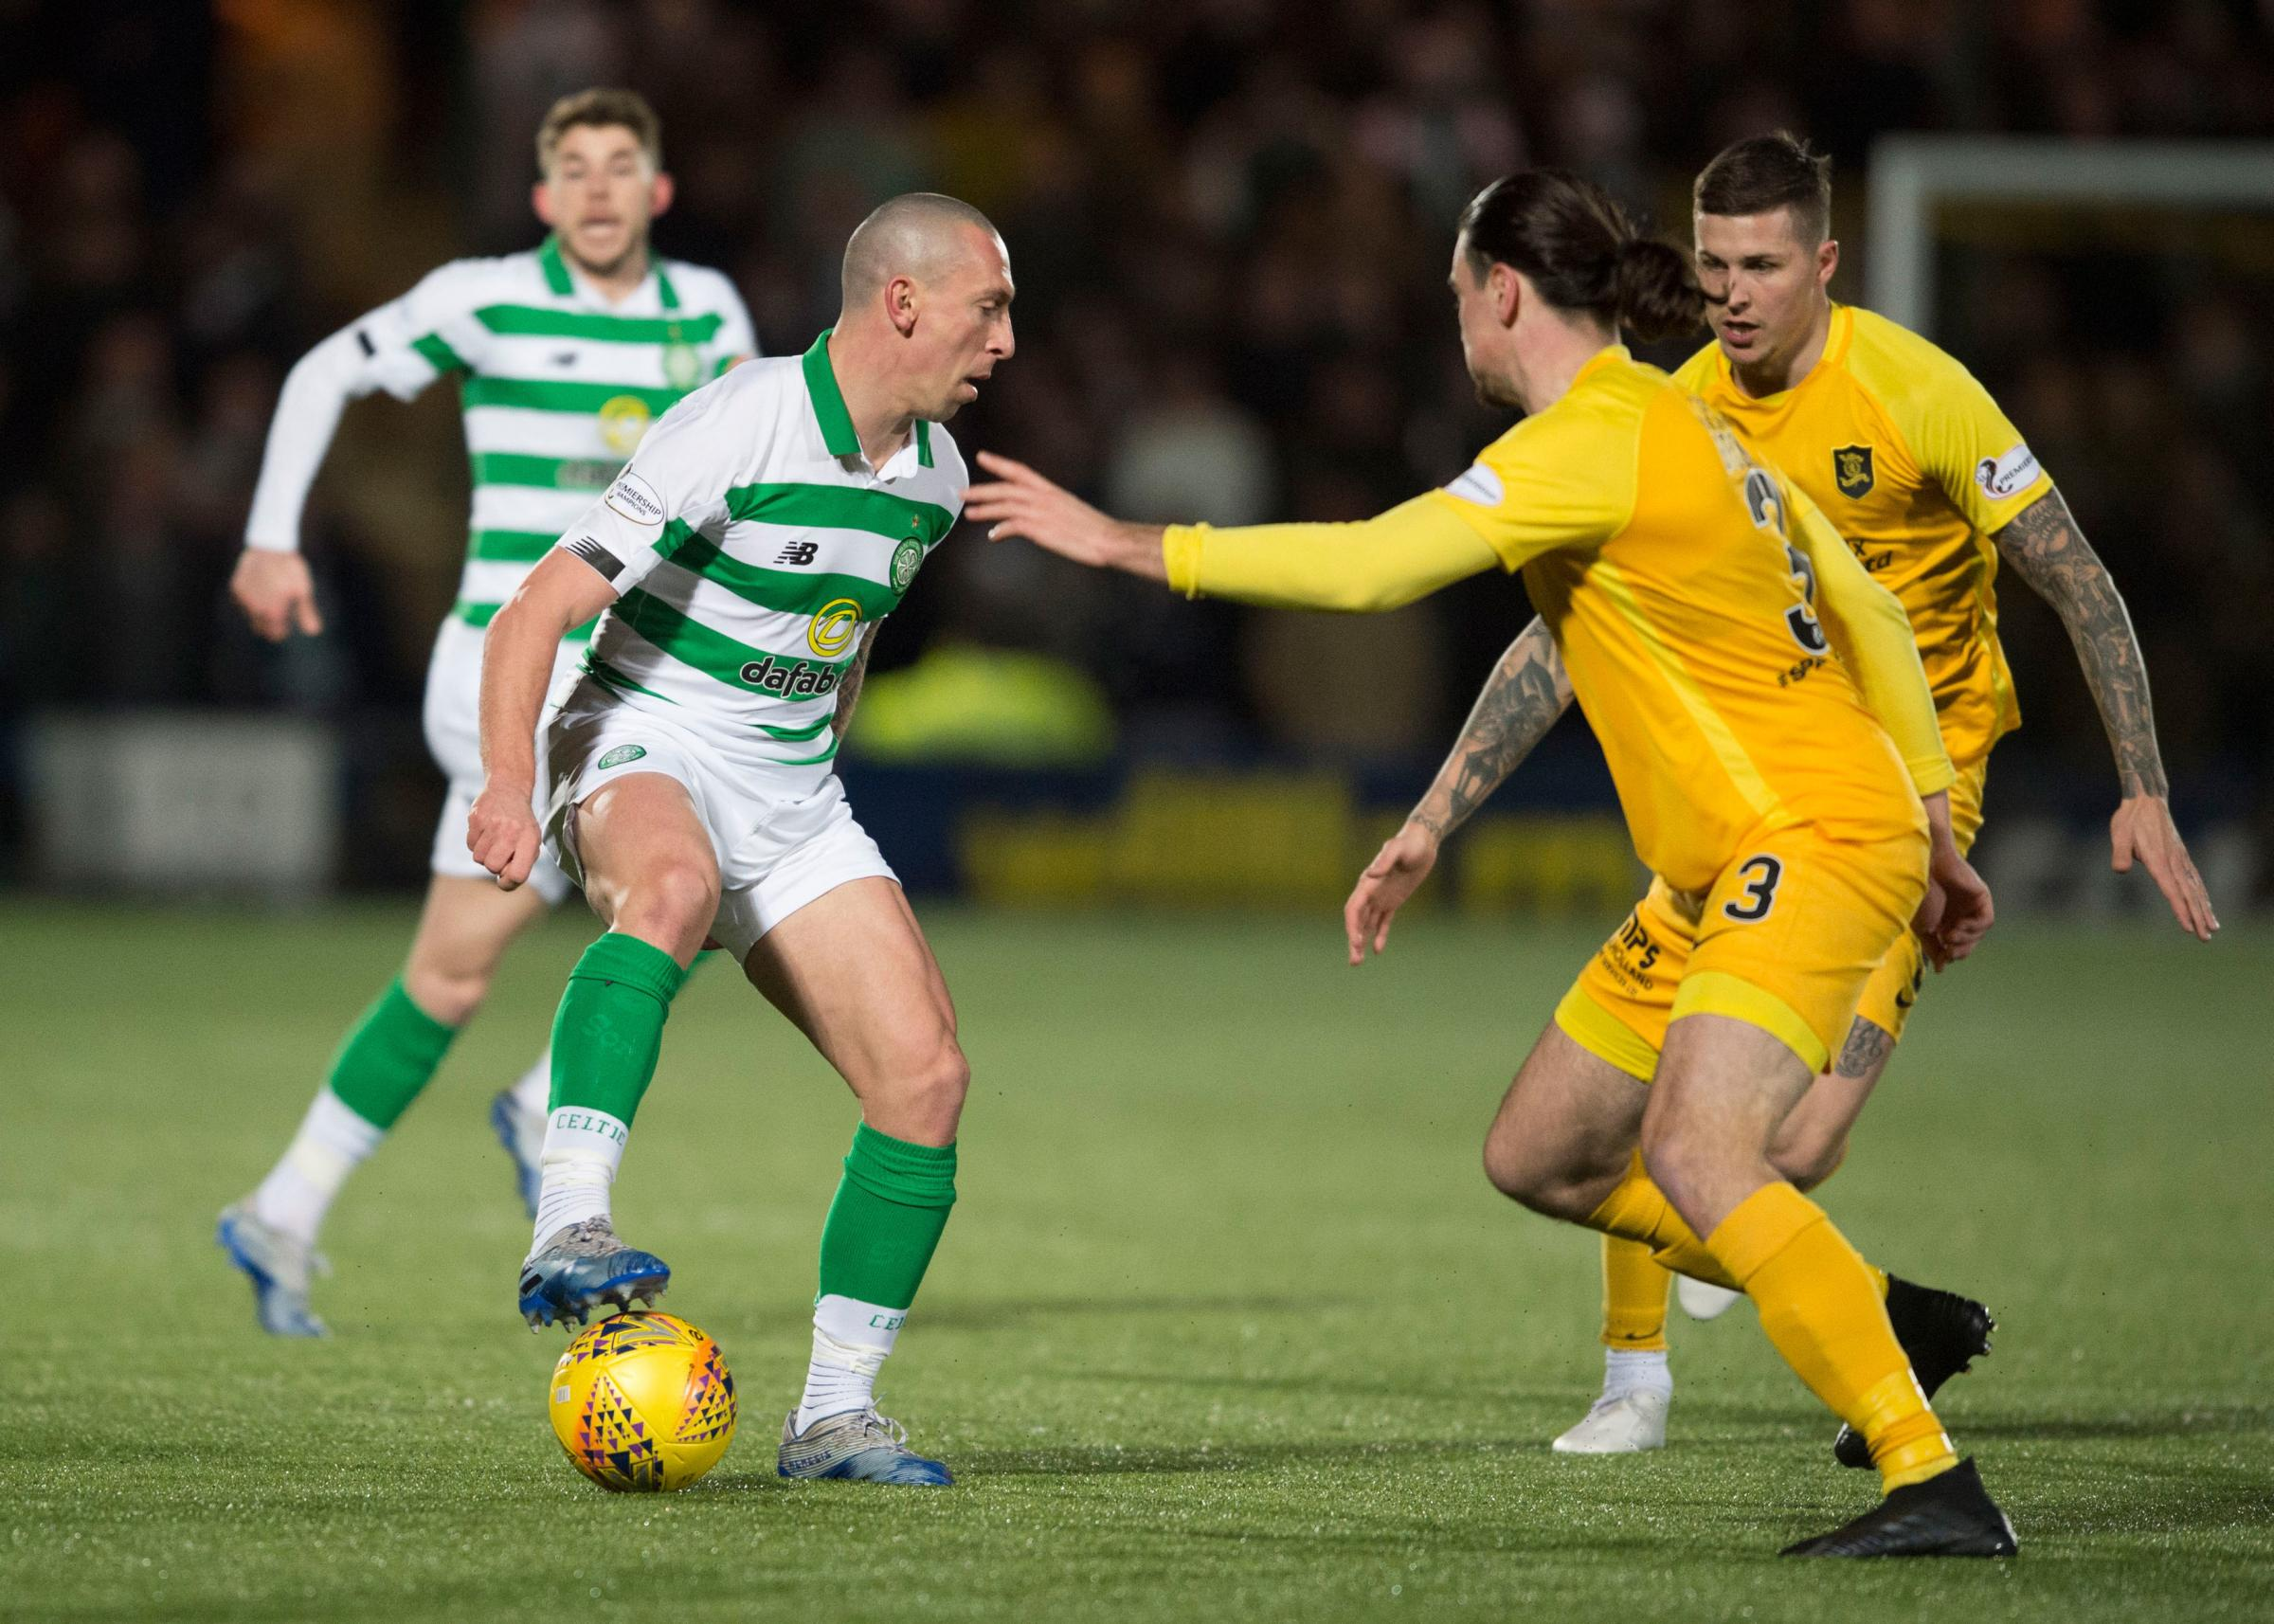 Livingston 2 Celtic 2: How the Celtic players rated as they snatch late draw at Livi